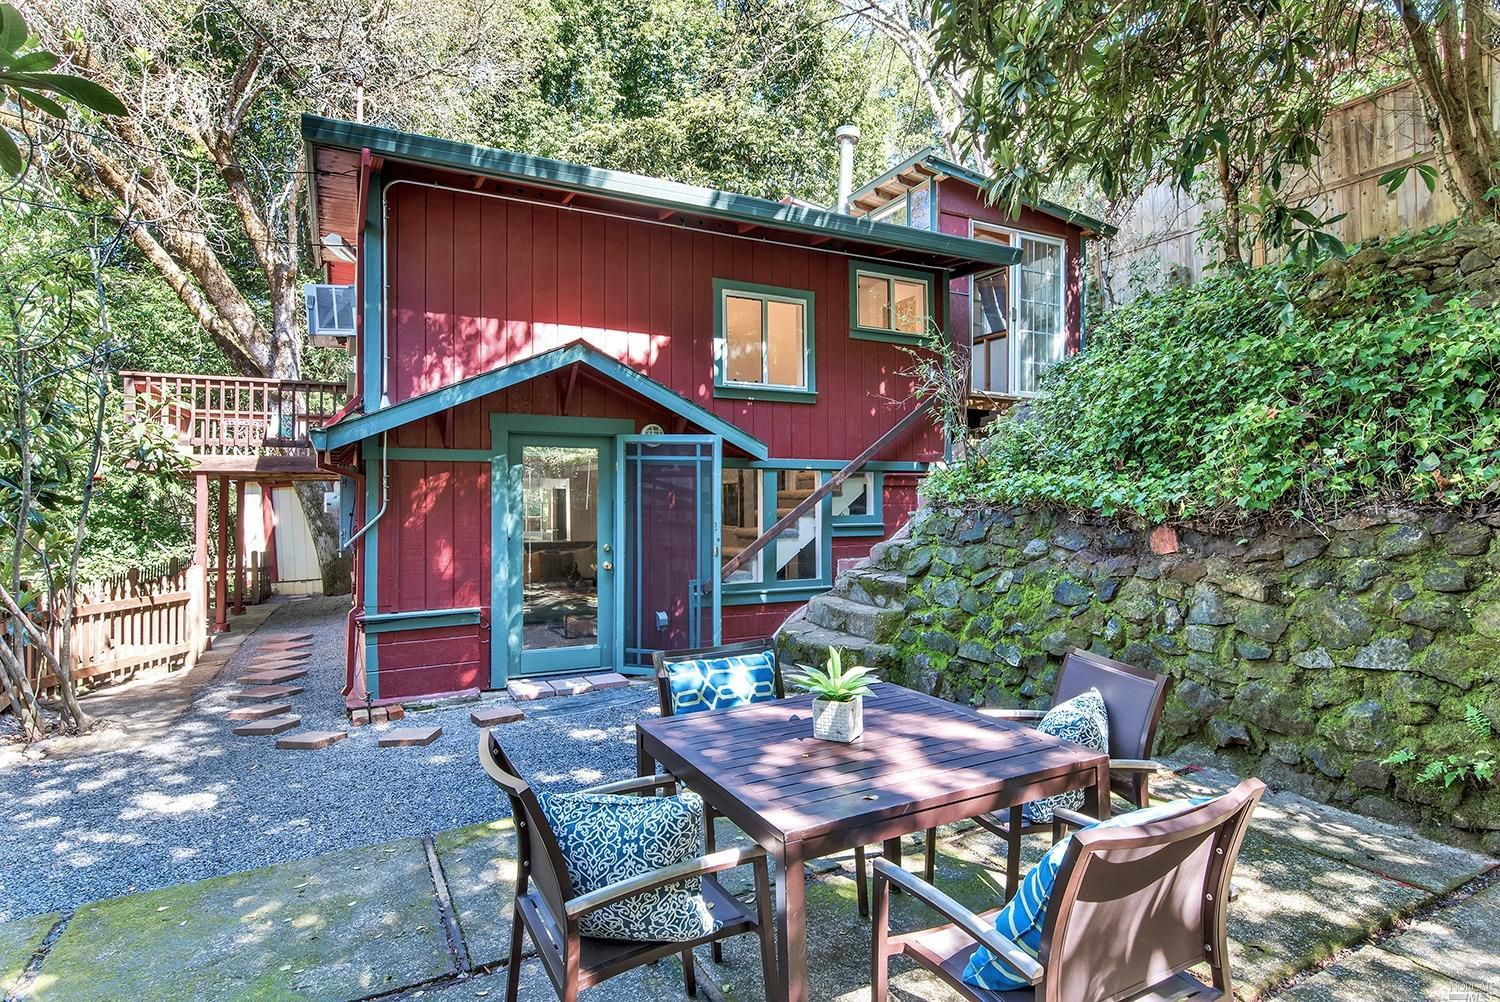 Always Wanted A Russian River Vacation Home? This $499K